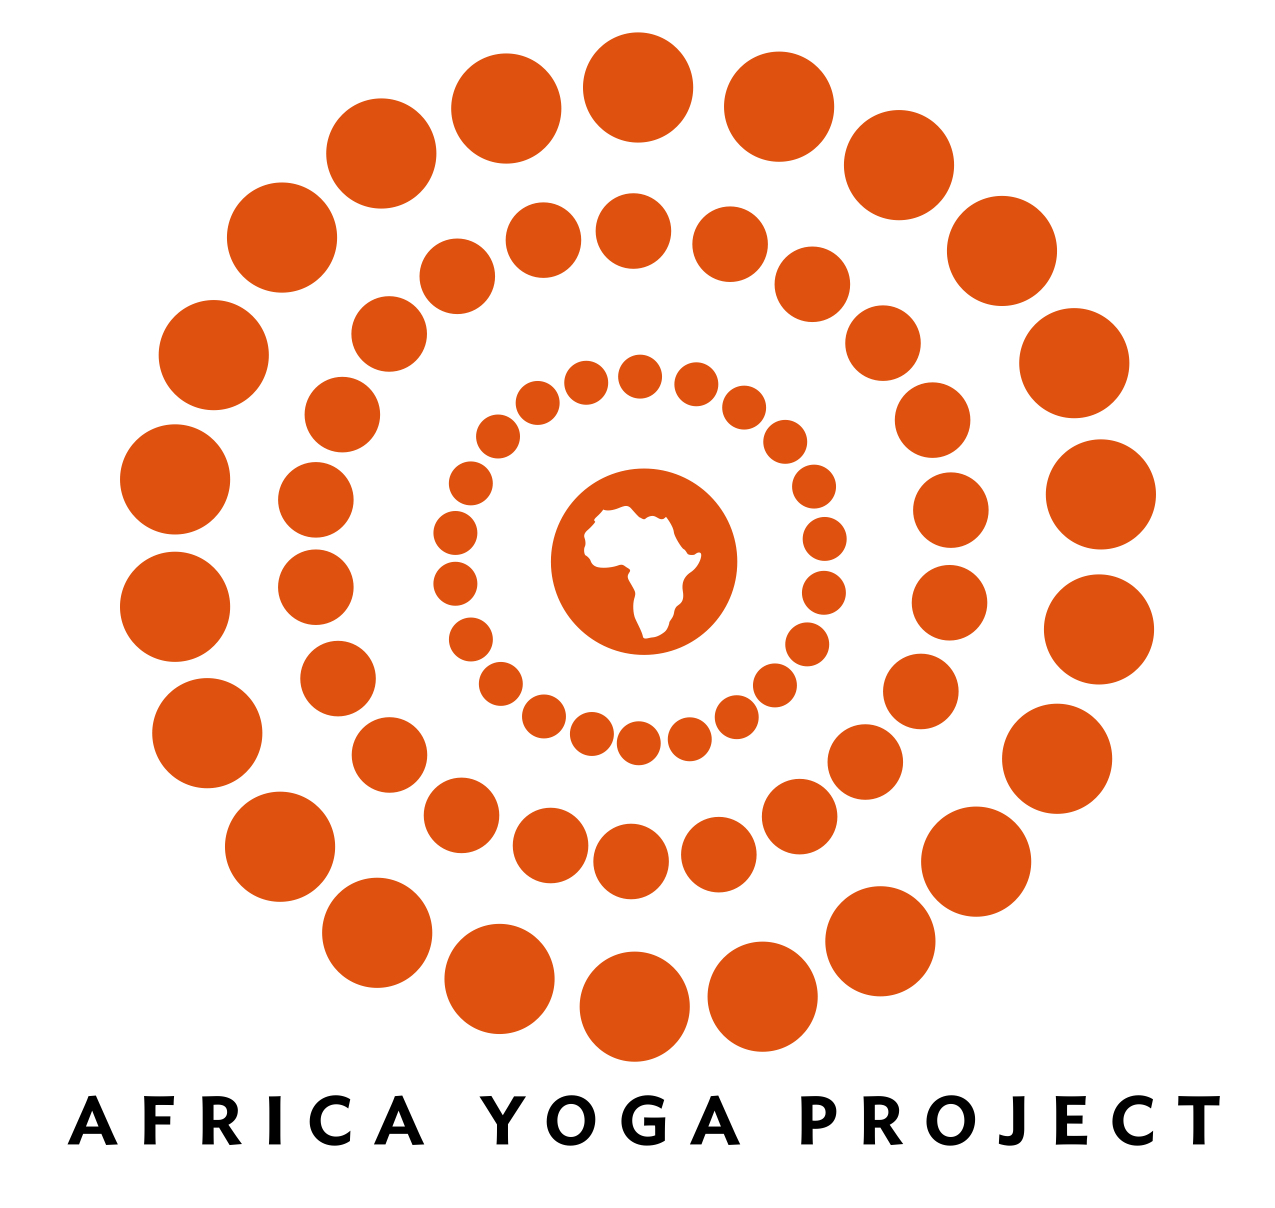 Fundraising Yoga Class - Saturday, March 305-6:30pm with Danielle CosgroveAYP, African Yoga Project, is an AMAZING outreach program. In Nairobi, 70% of young adults are unemployed. Unemployment often leads to unhealthy living conditions, drugs, alcohol, stealing, fighting.... WE ARE DISRUPTING THE DRIFT by making yoga accessible in these communities and not only that but by GIVING YOUNG PEOPLE the opportunity to go through training and gain employment in the wellbeing industry. Last year we raised over $6,000 - that's enough to put THREE young Africans through 200 hour yoga teacher training + have them enter Africa Yoga Project's 3-year academy. Danielle Cosgrove, our very own Warrior from Orlando, will be leading a 90 minute class to support AYP.Suggested donation for class is $25 (but no one will be turned away, of course! everything counts)